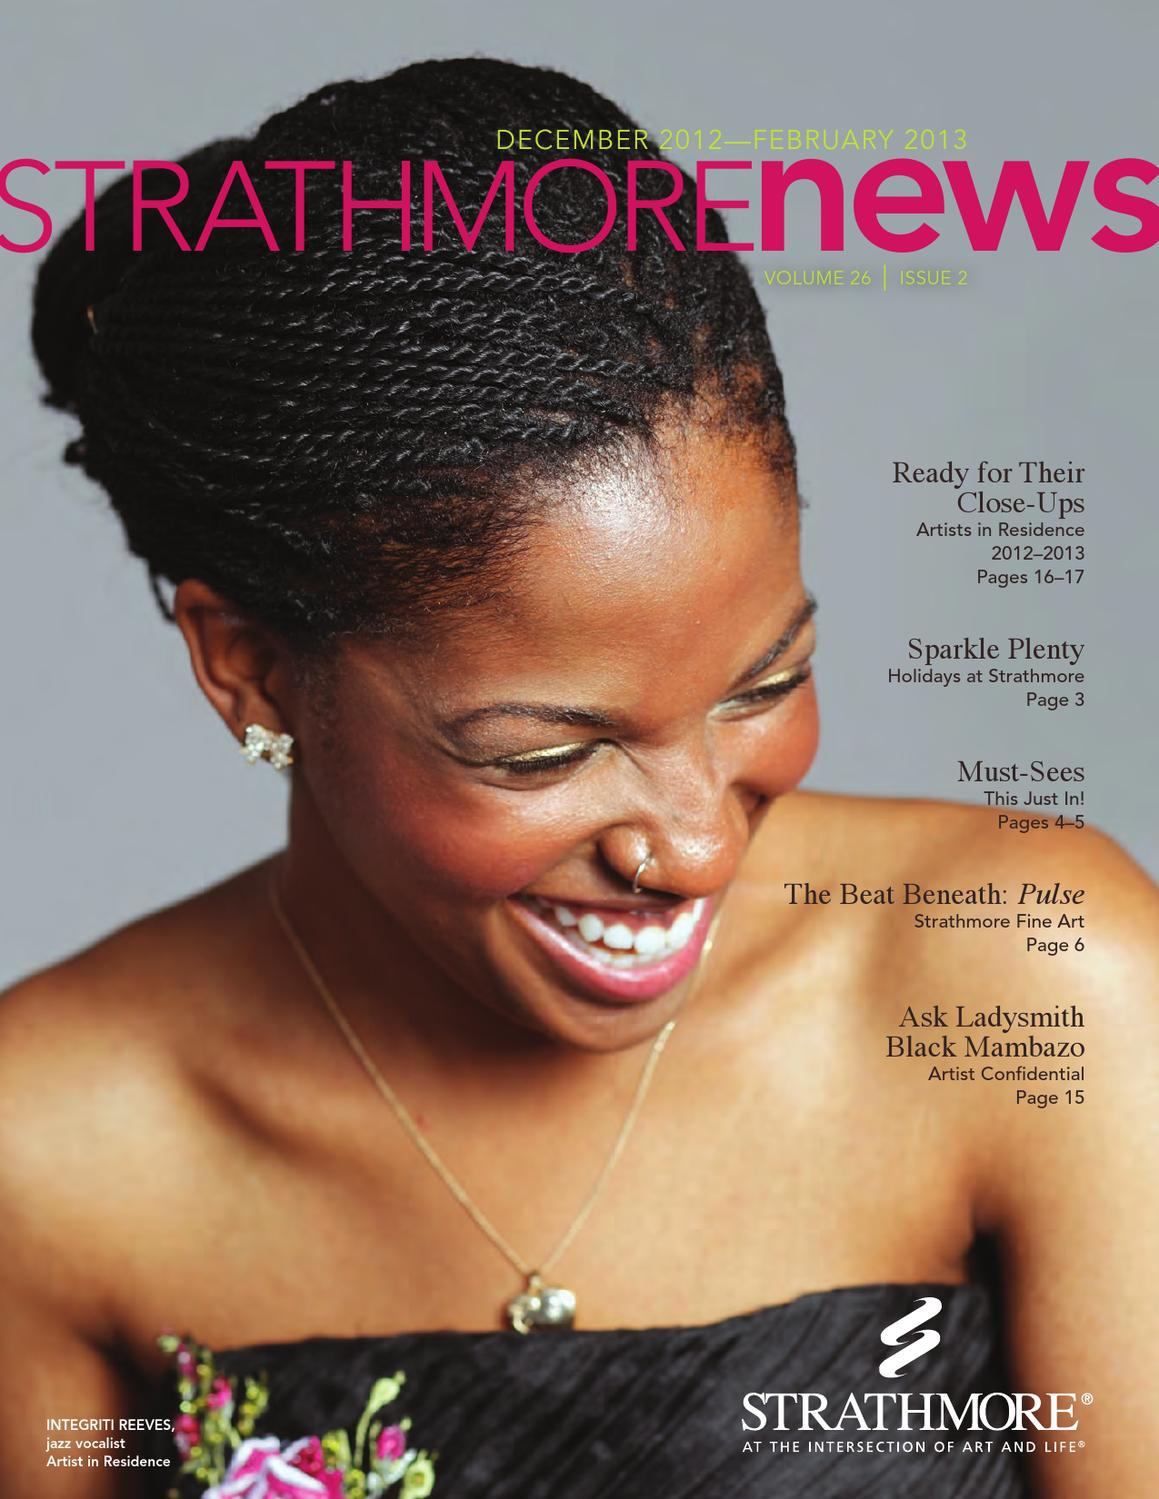 Winter Strathmore News 2012-2013 by Strathmore - issuu